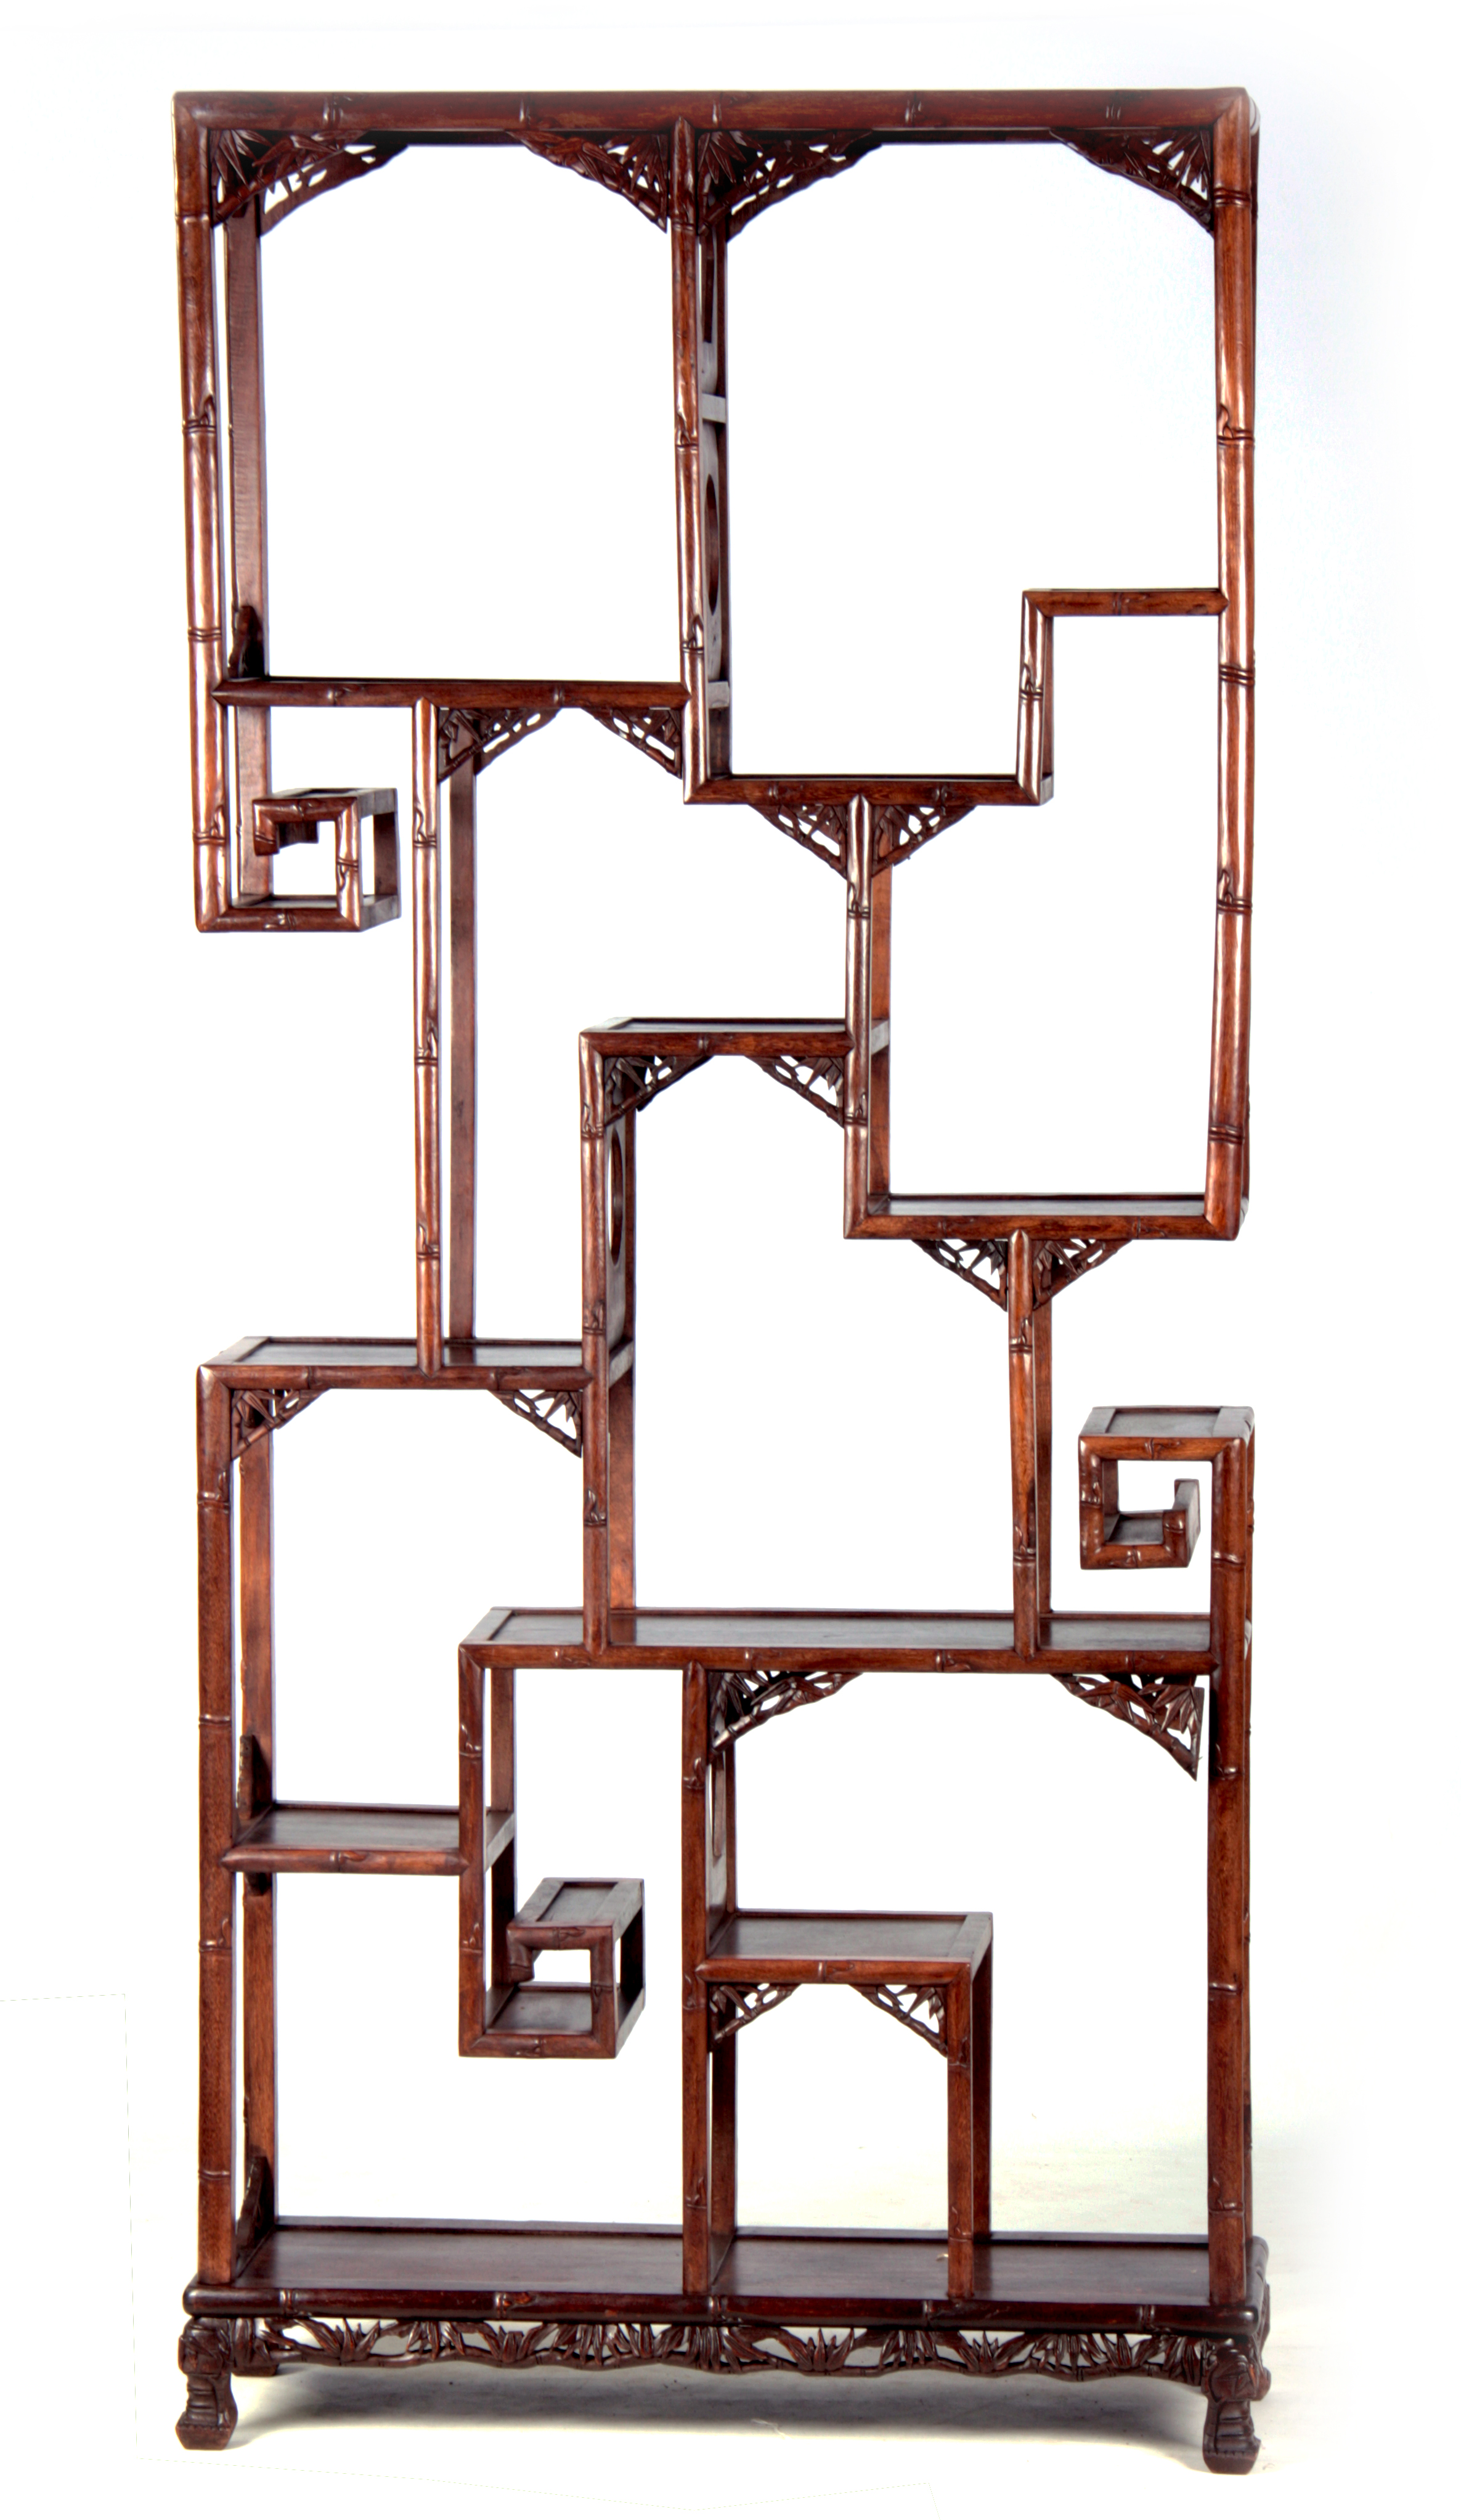 A 19TH CENTURY CHINESE CHICKEN WING WOOD STANDING WHATNOT with a faux bamboo frame and leaf carved